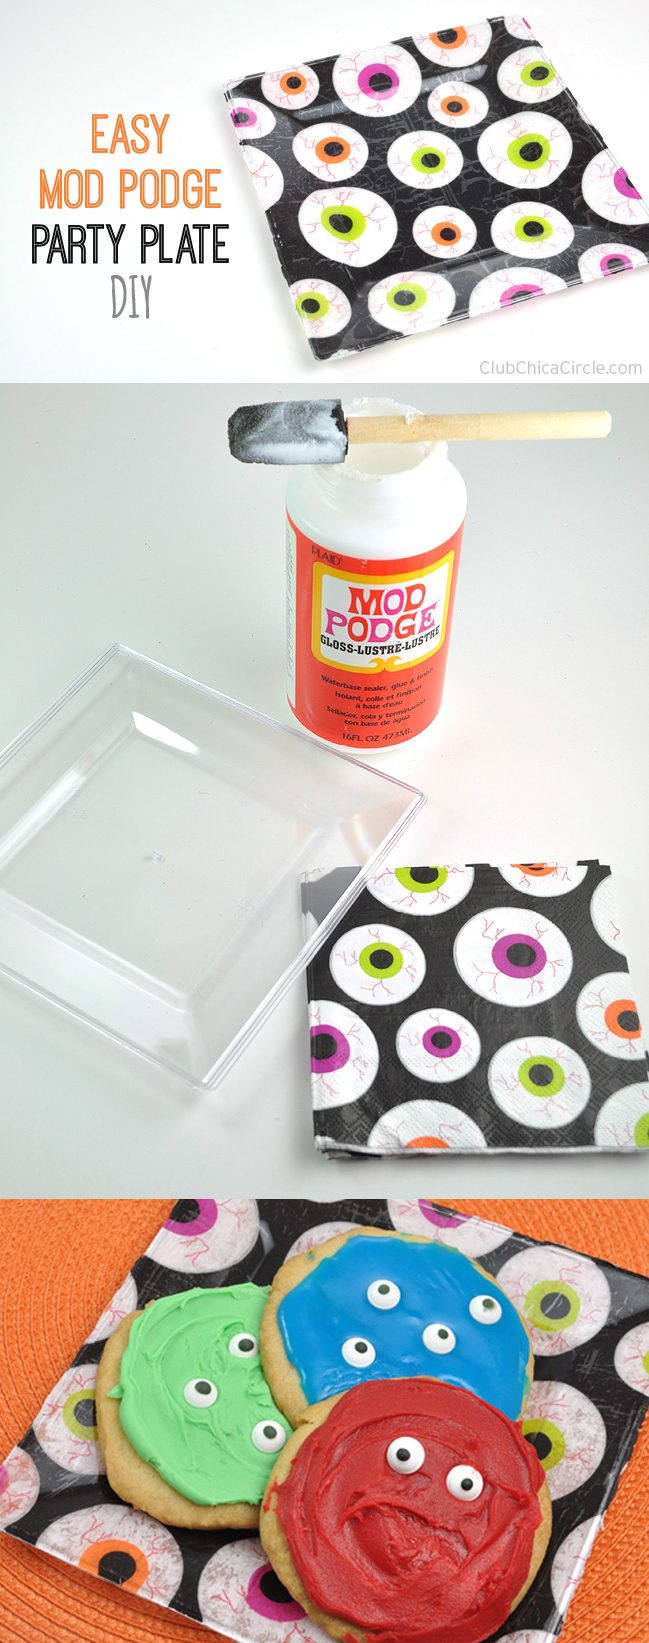 Easy Eyeball party plate craft idea with mod podge